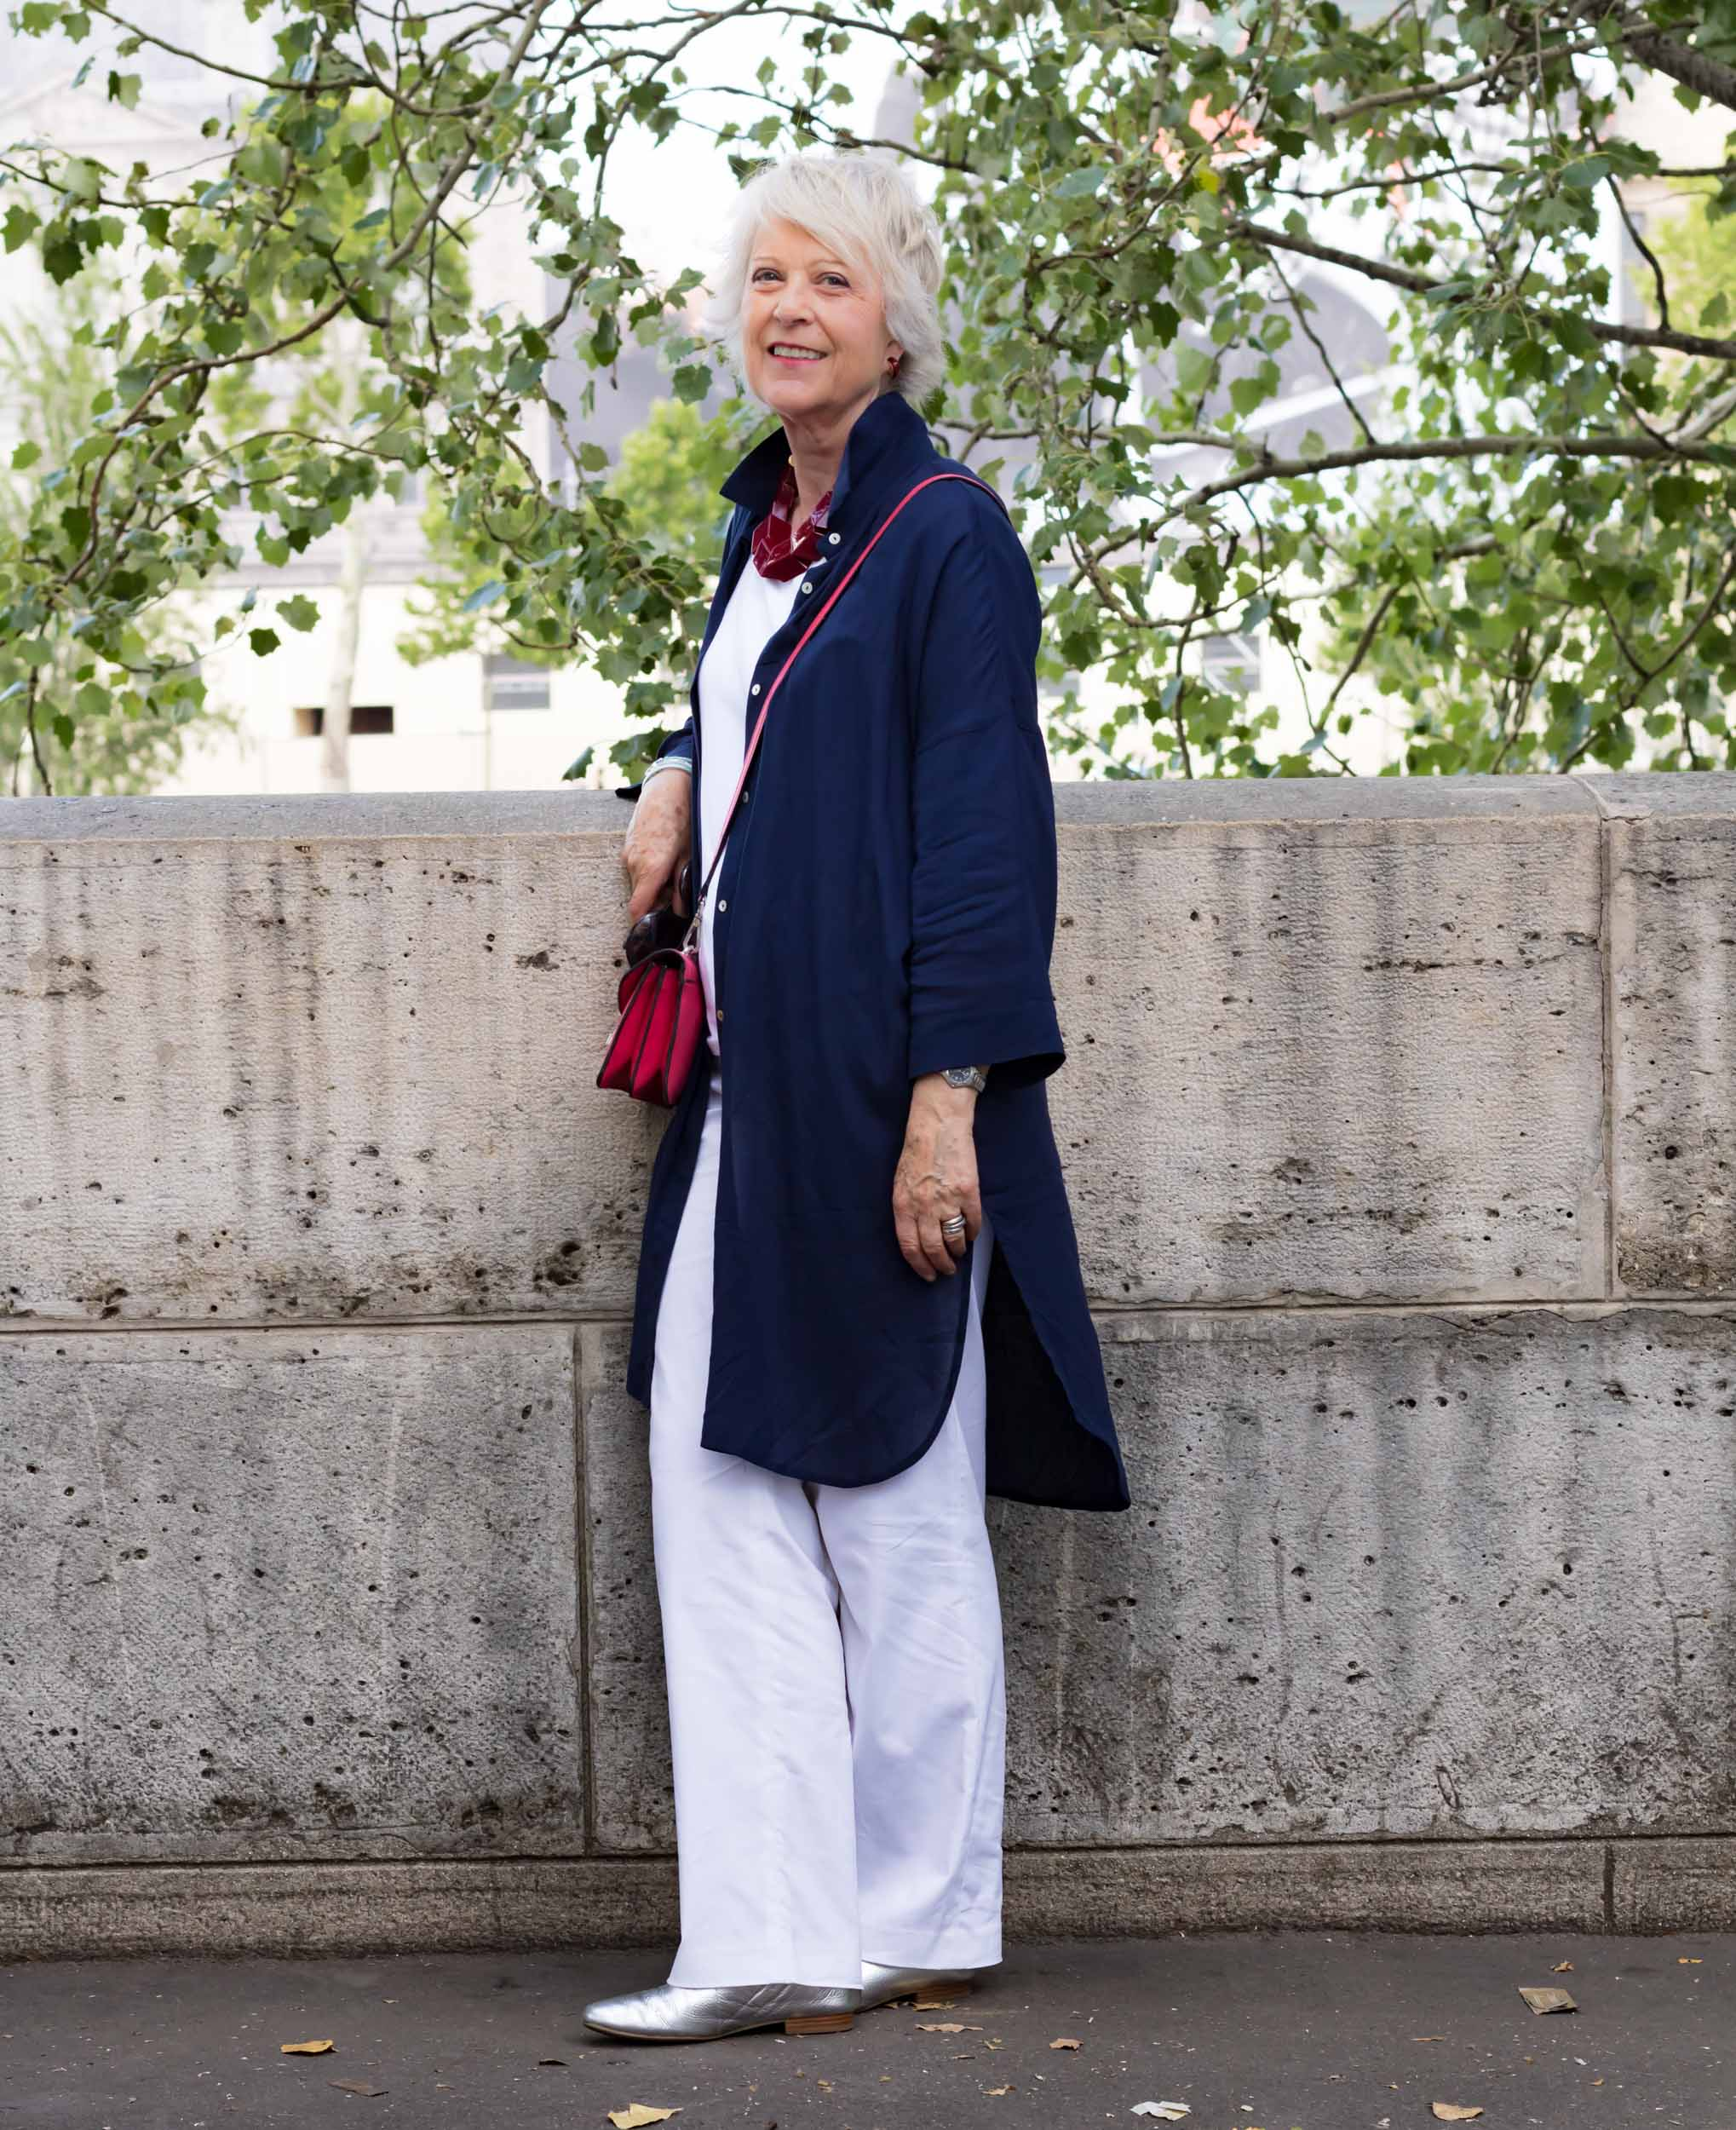 White trousers and tee shirt with navy shirtdress